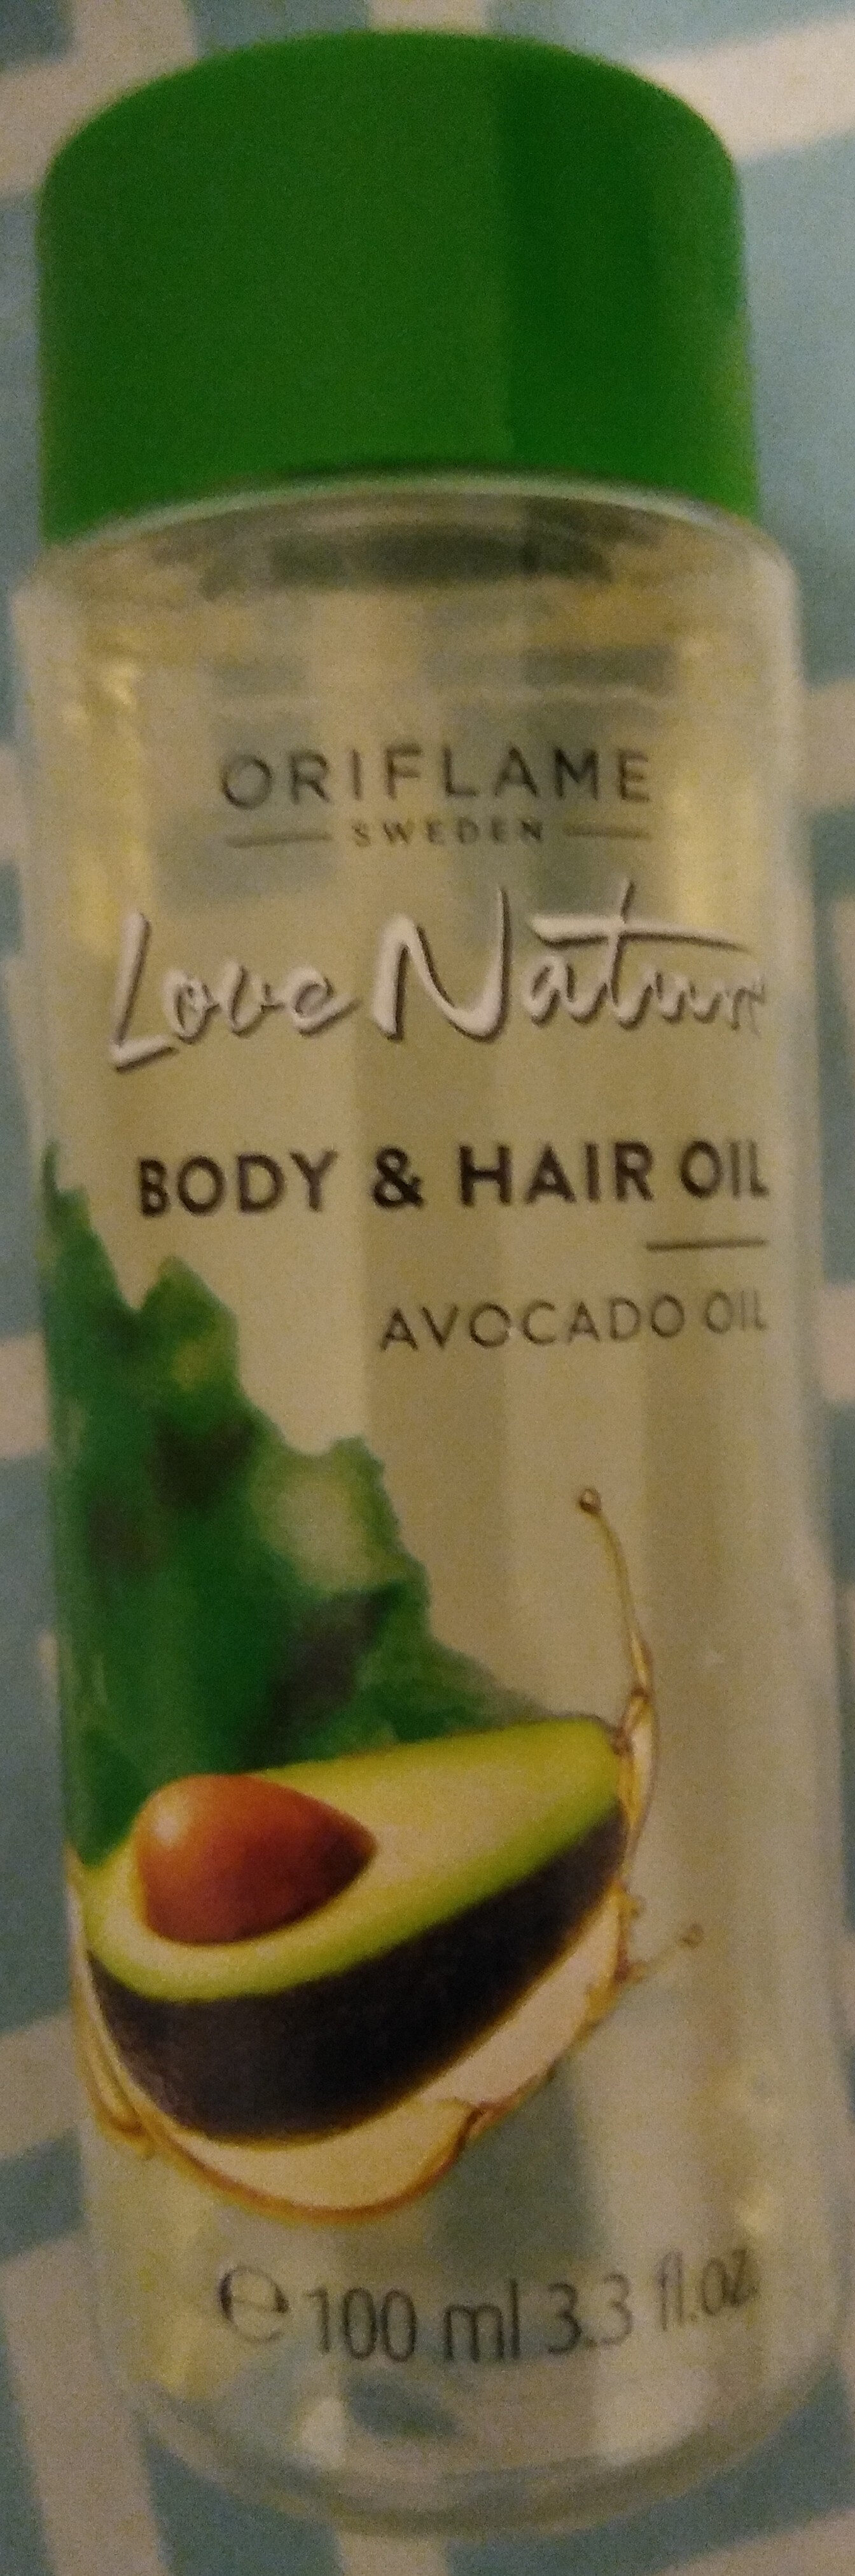 Love nature body & hair oil - Product